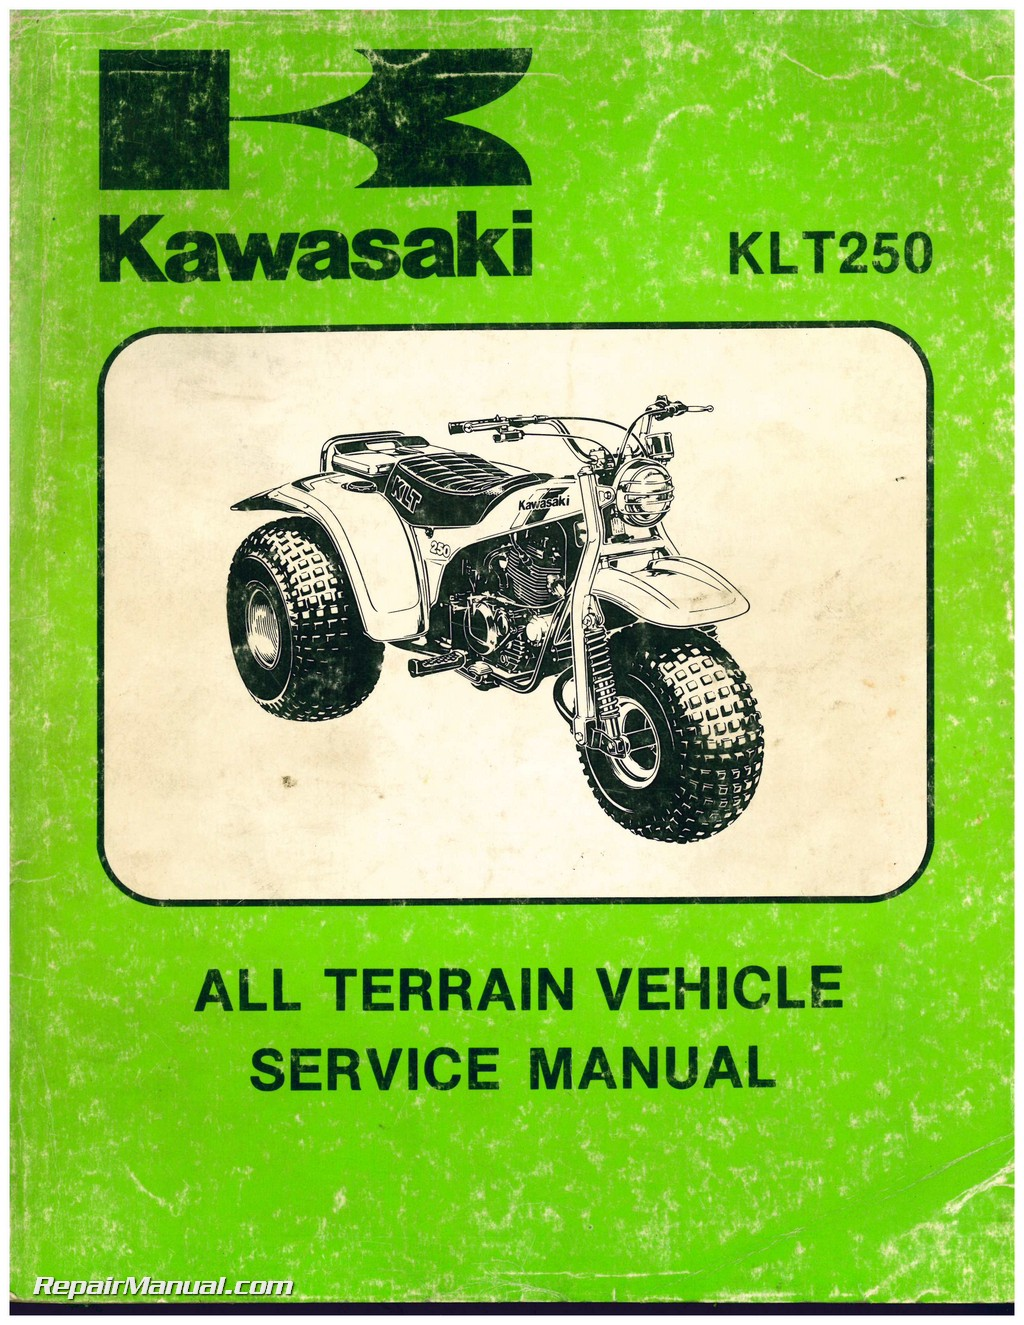 1982 kawasaki klt250 a1 3 wheel atc printed service manual rh repairmanual  com Wiring Diagram for